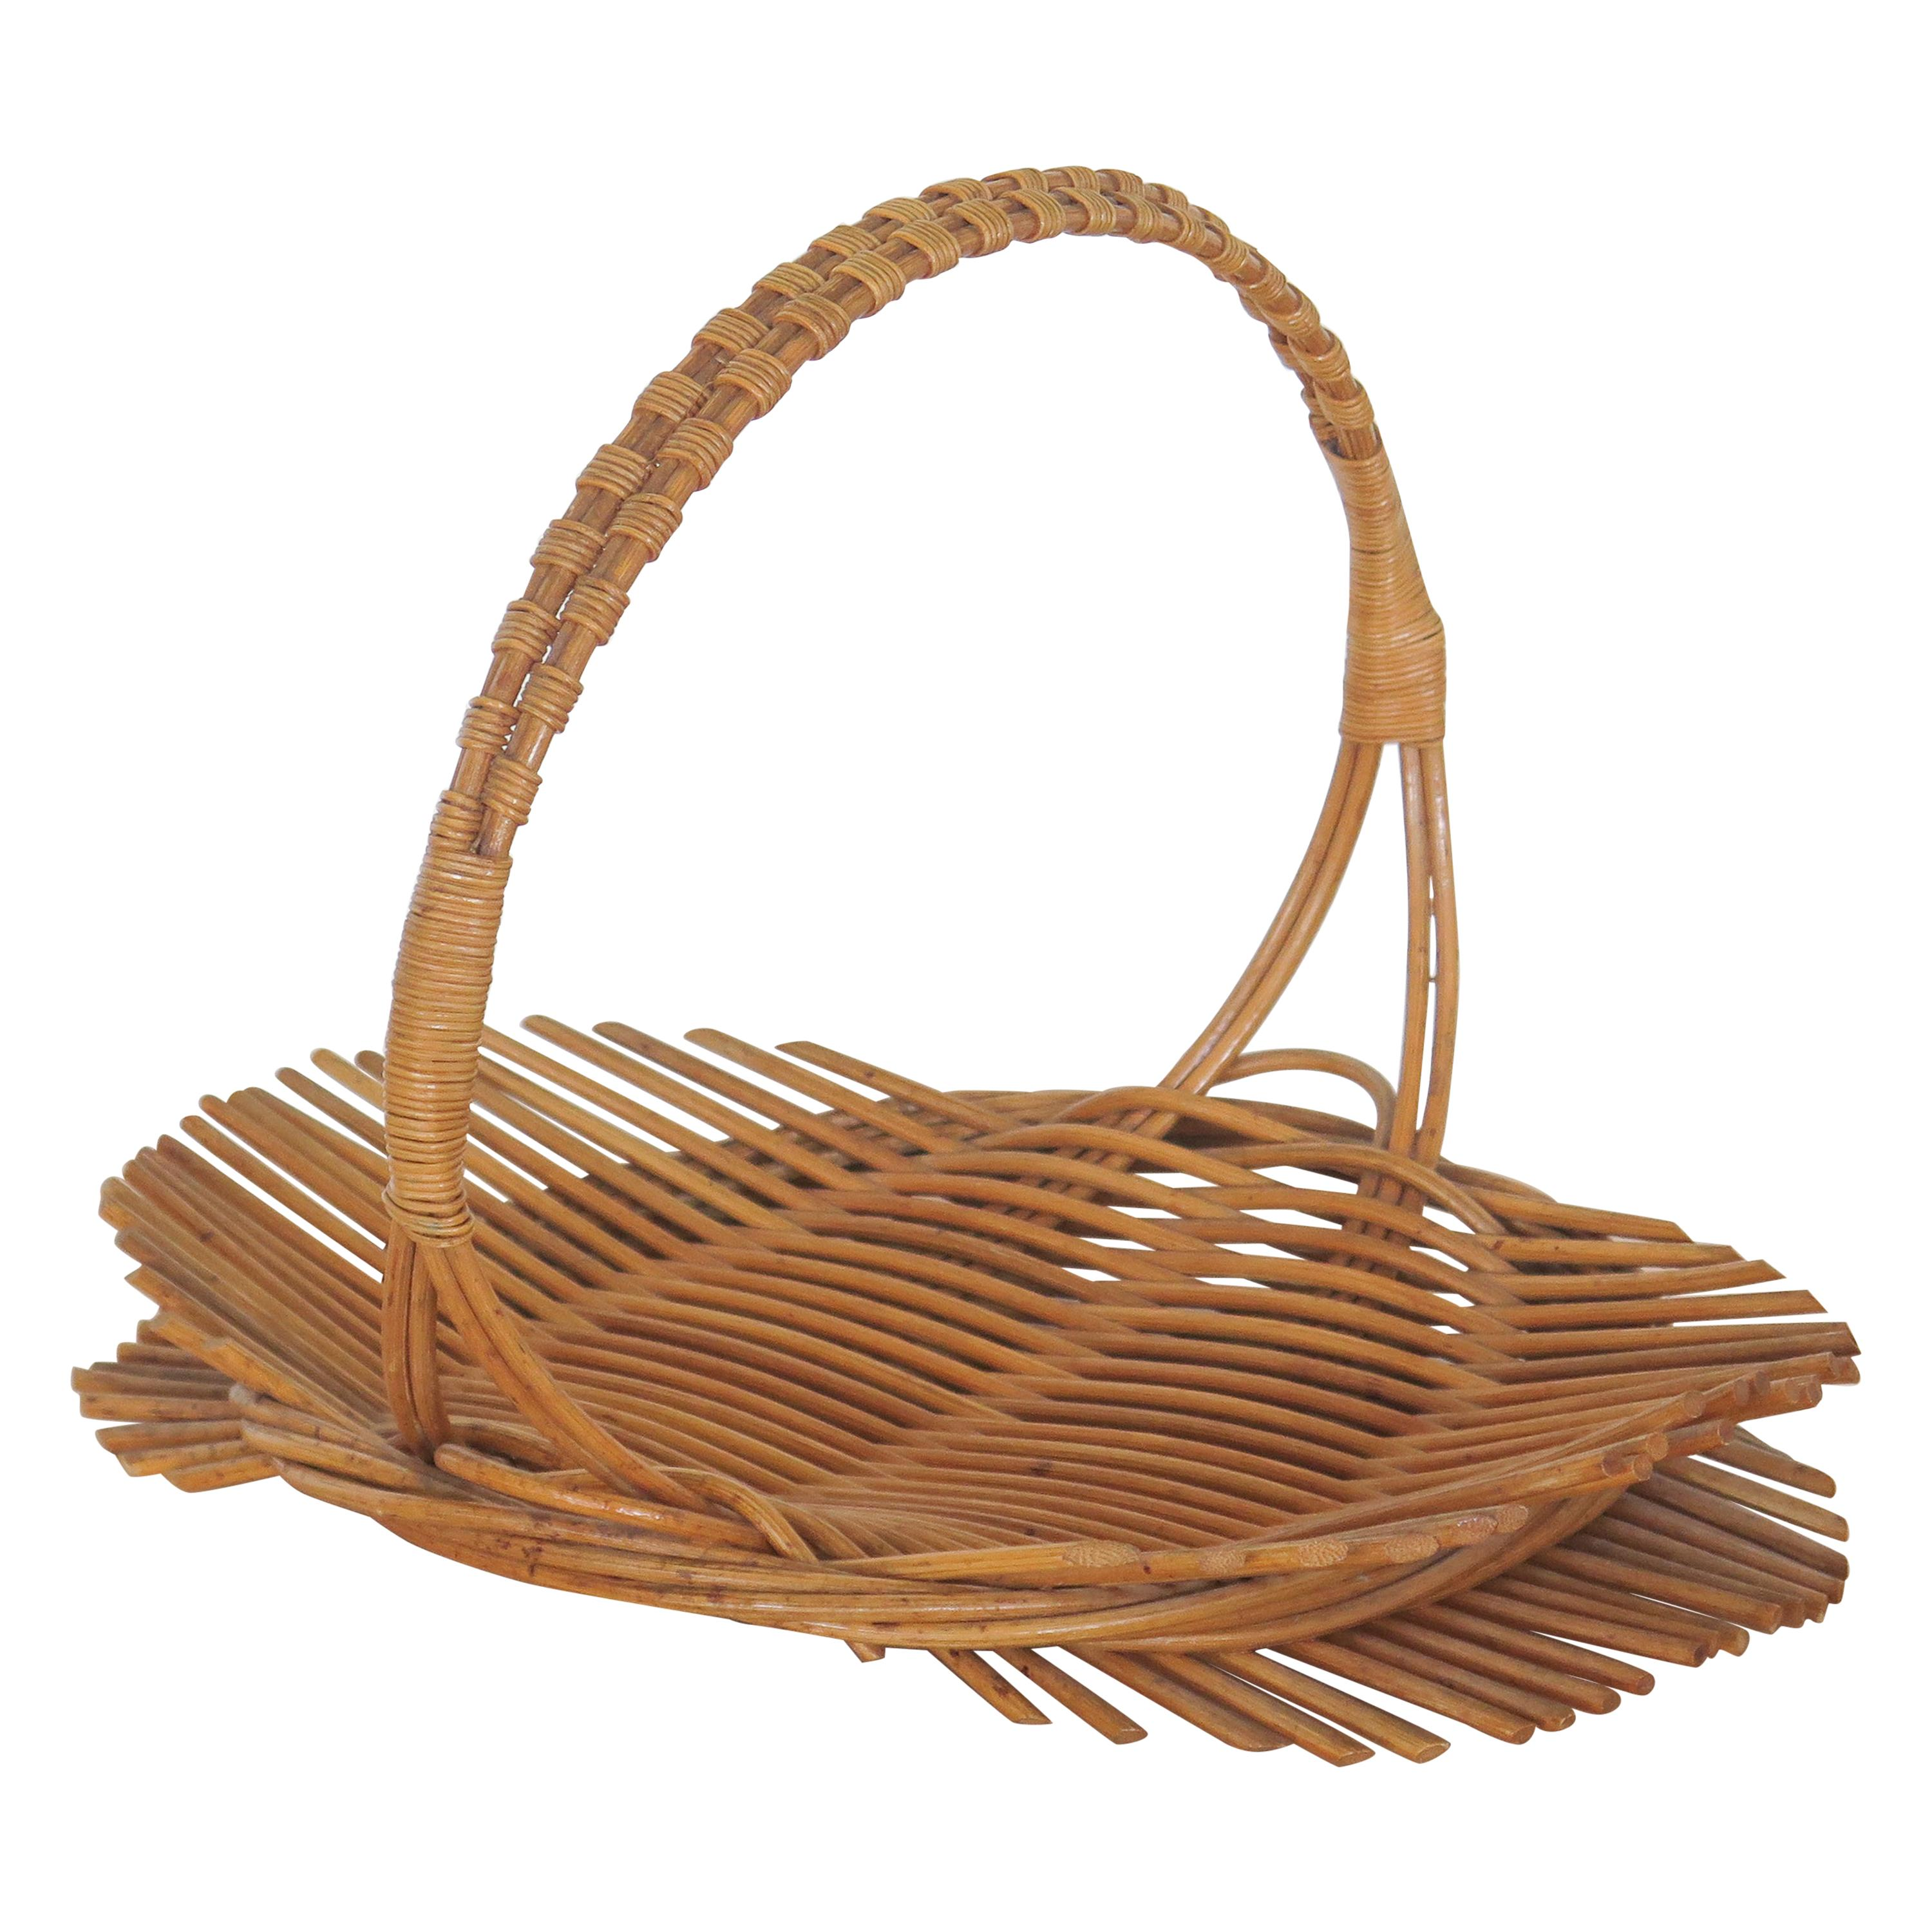 French Rattan Tray with Handle